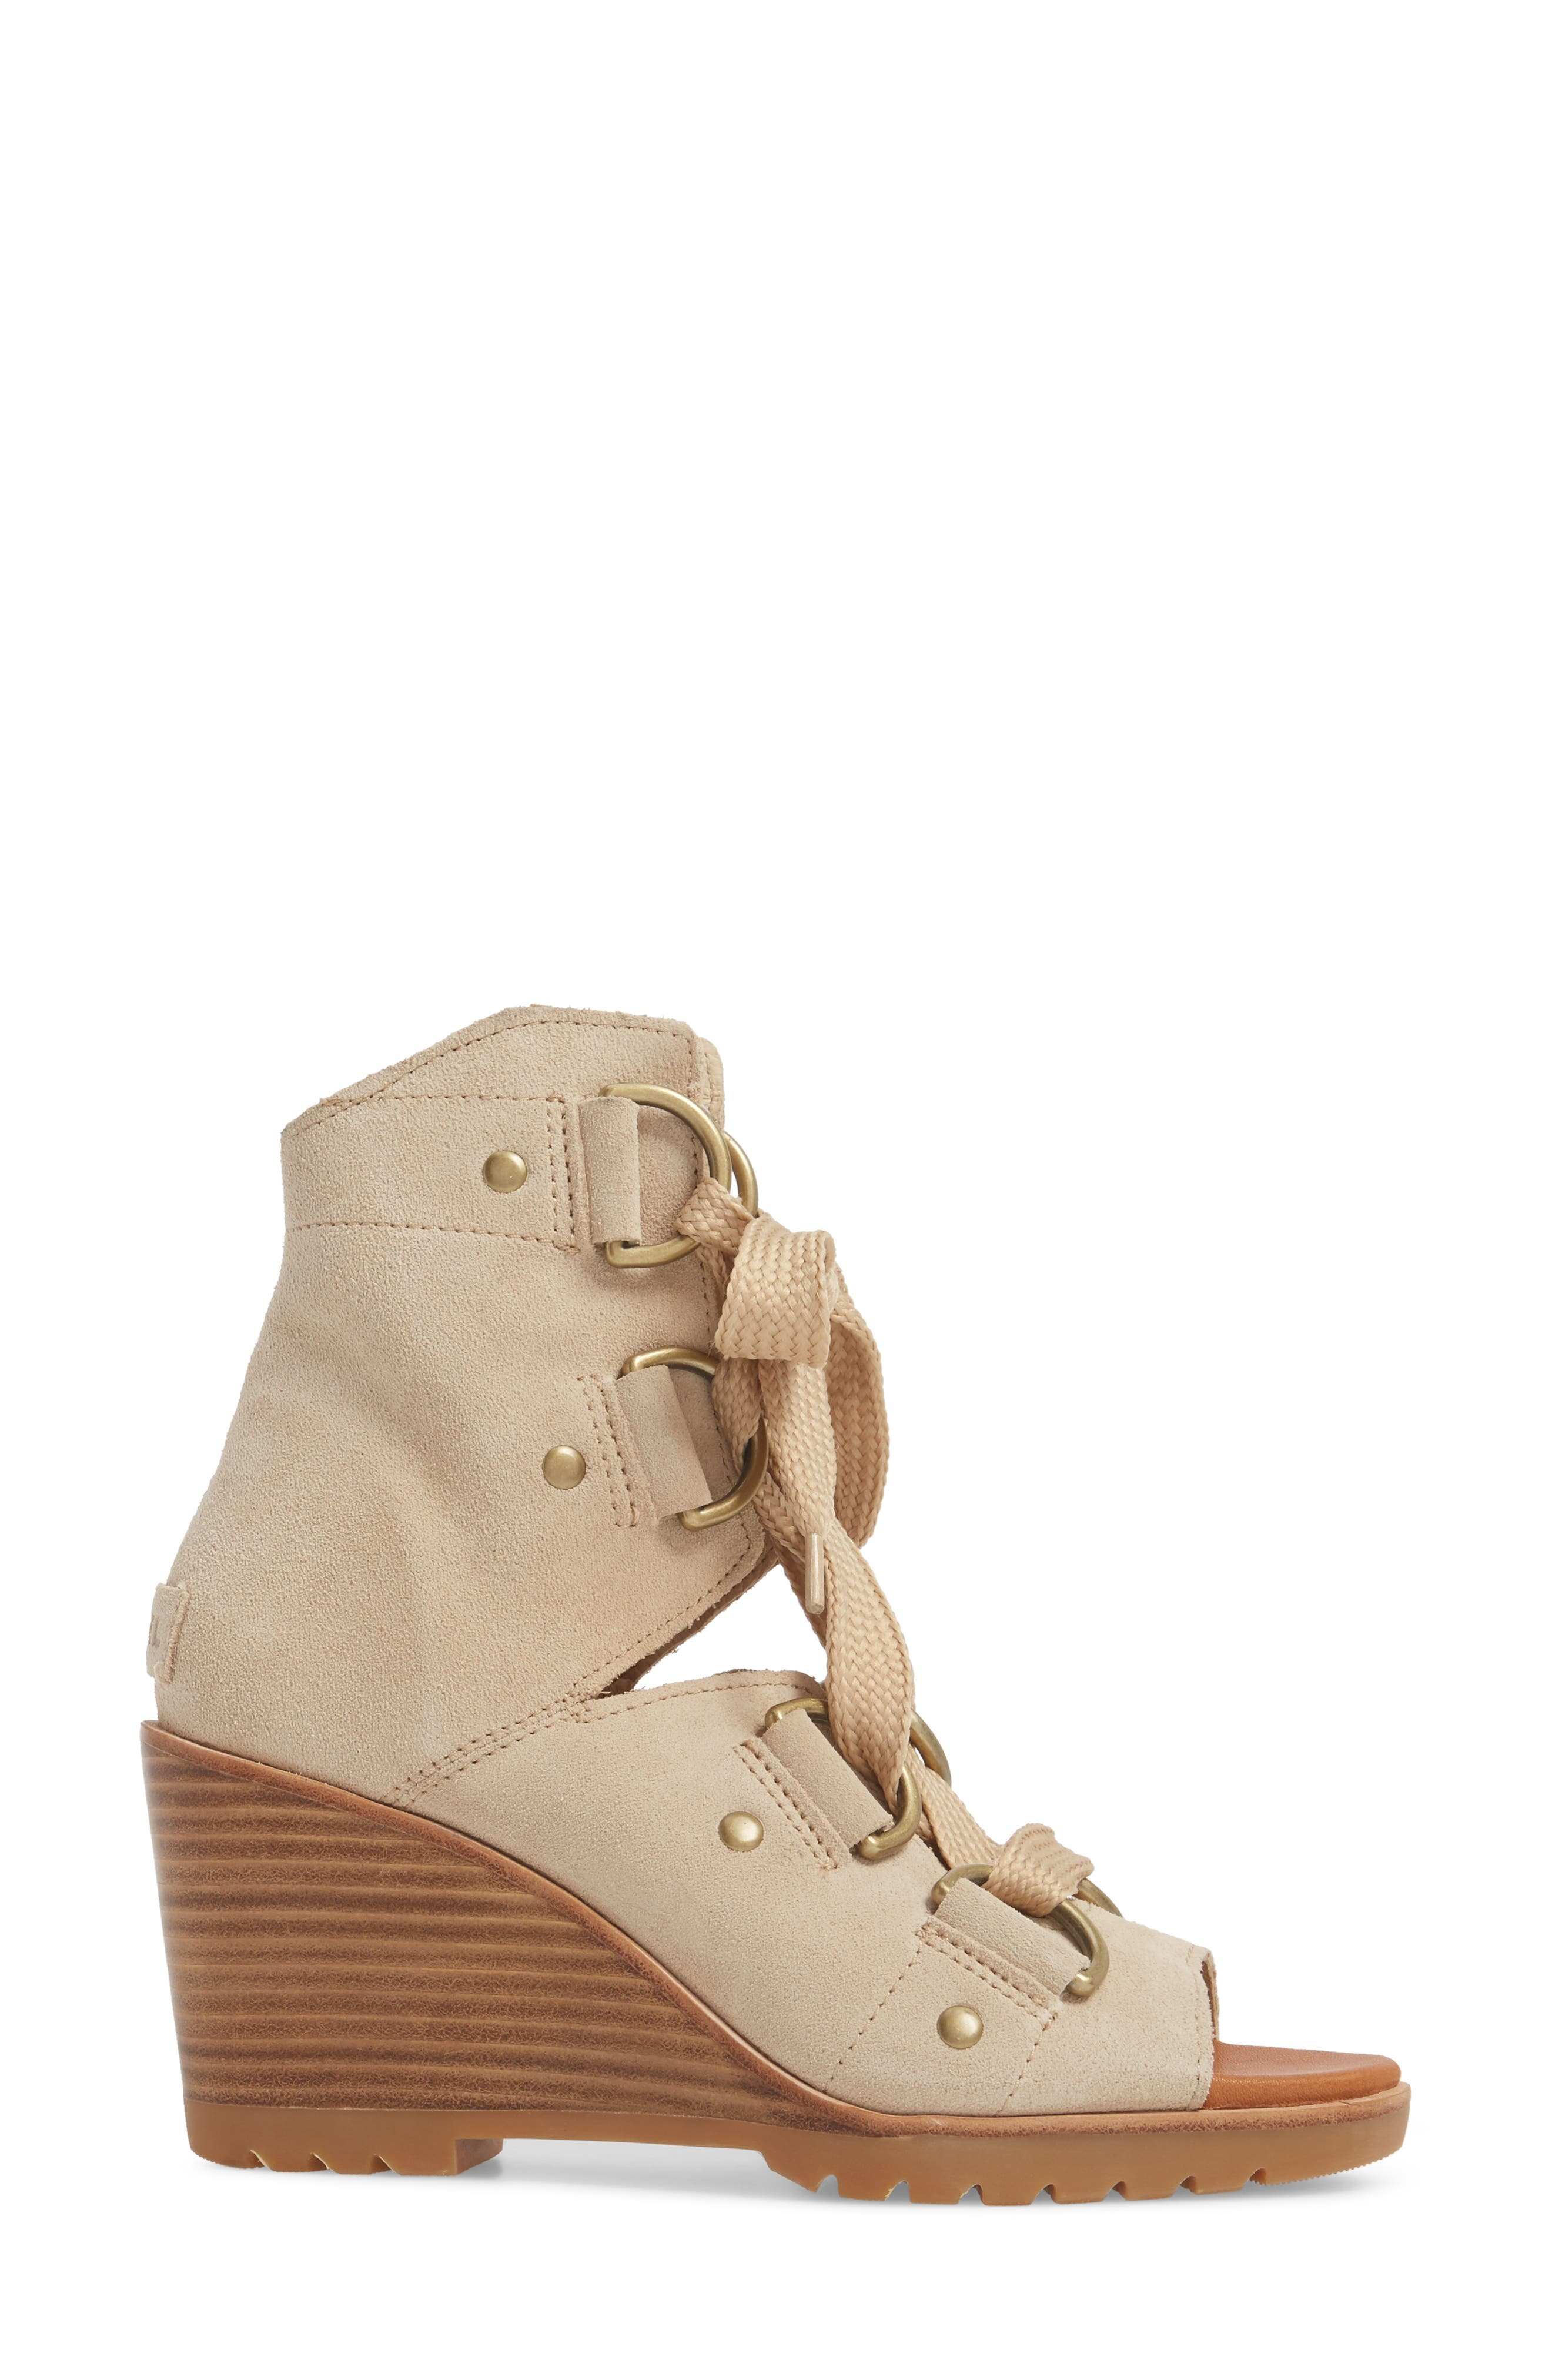 After Hours Wedge Bootie,                             Alternate thumbnail 3, color,